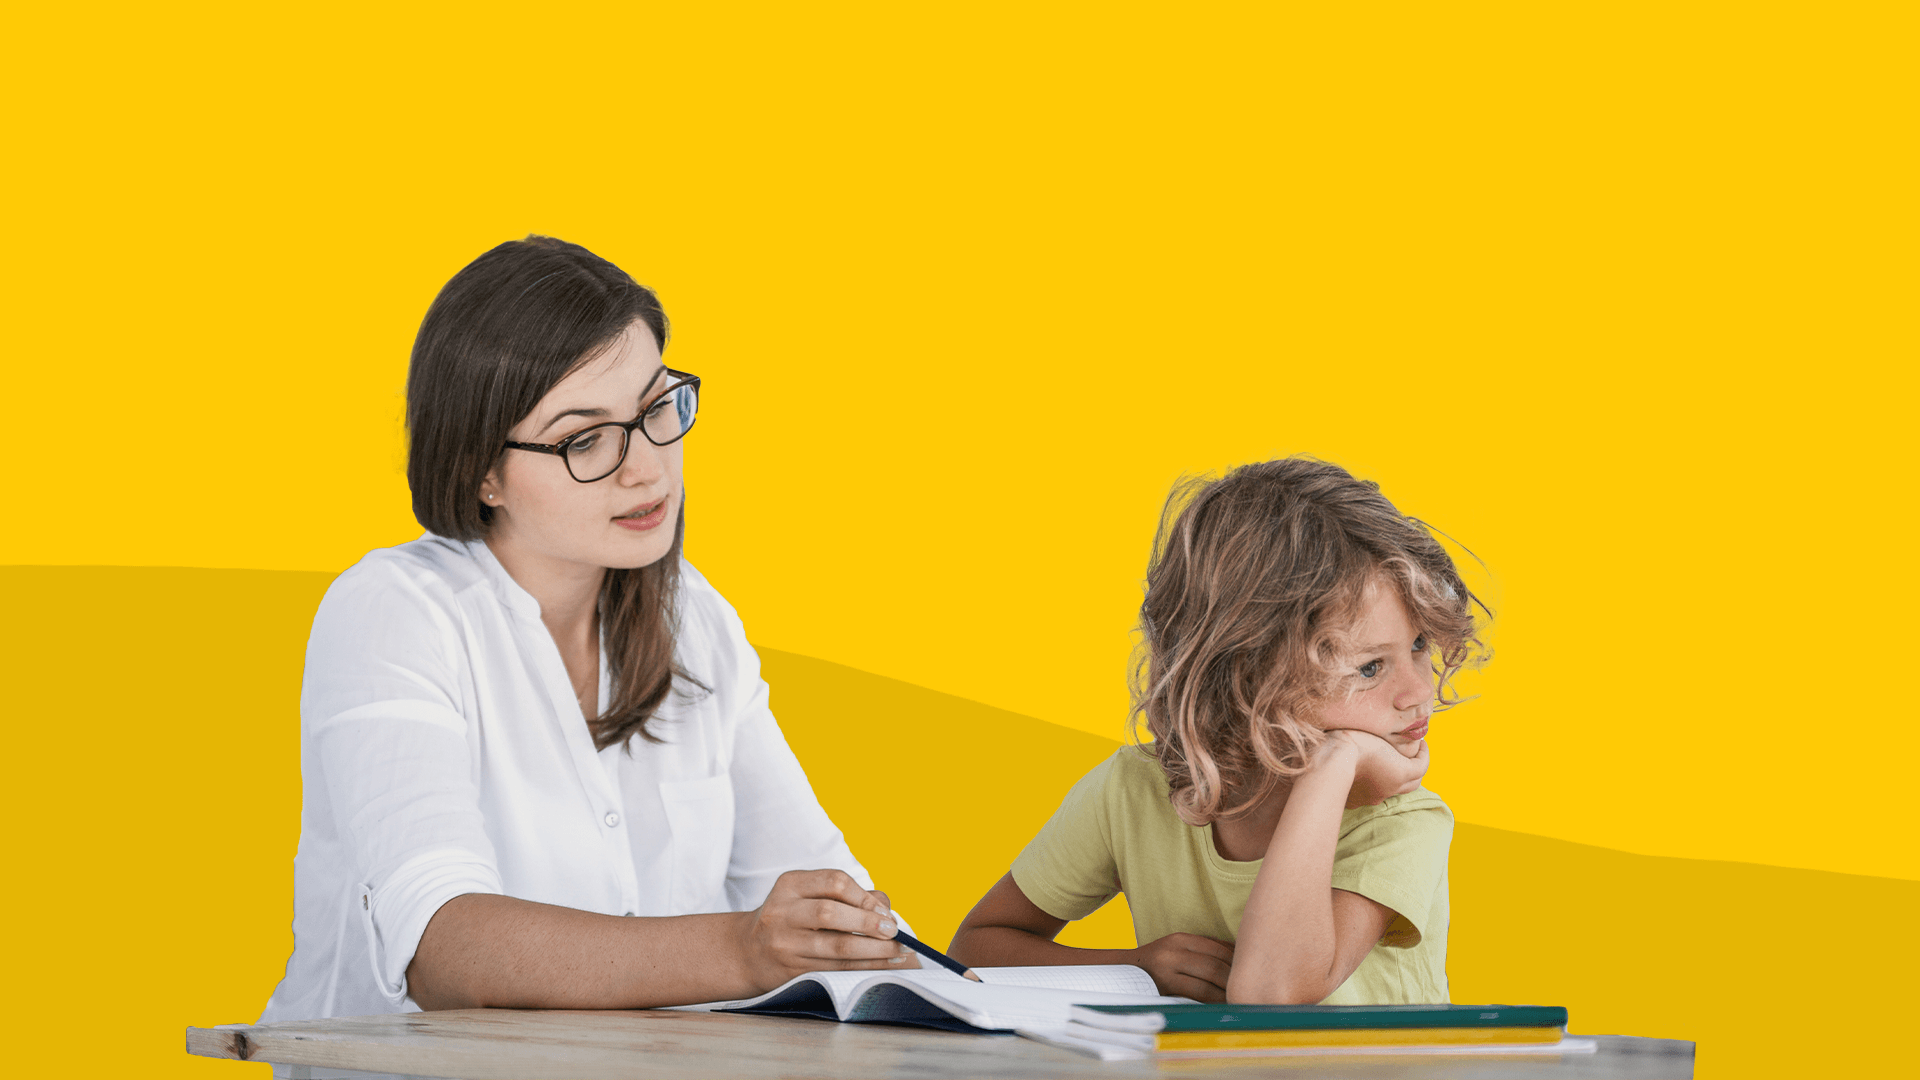 How do we diagnose ADHD in children: